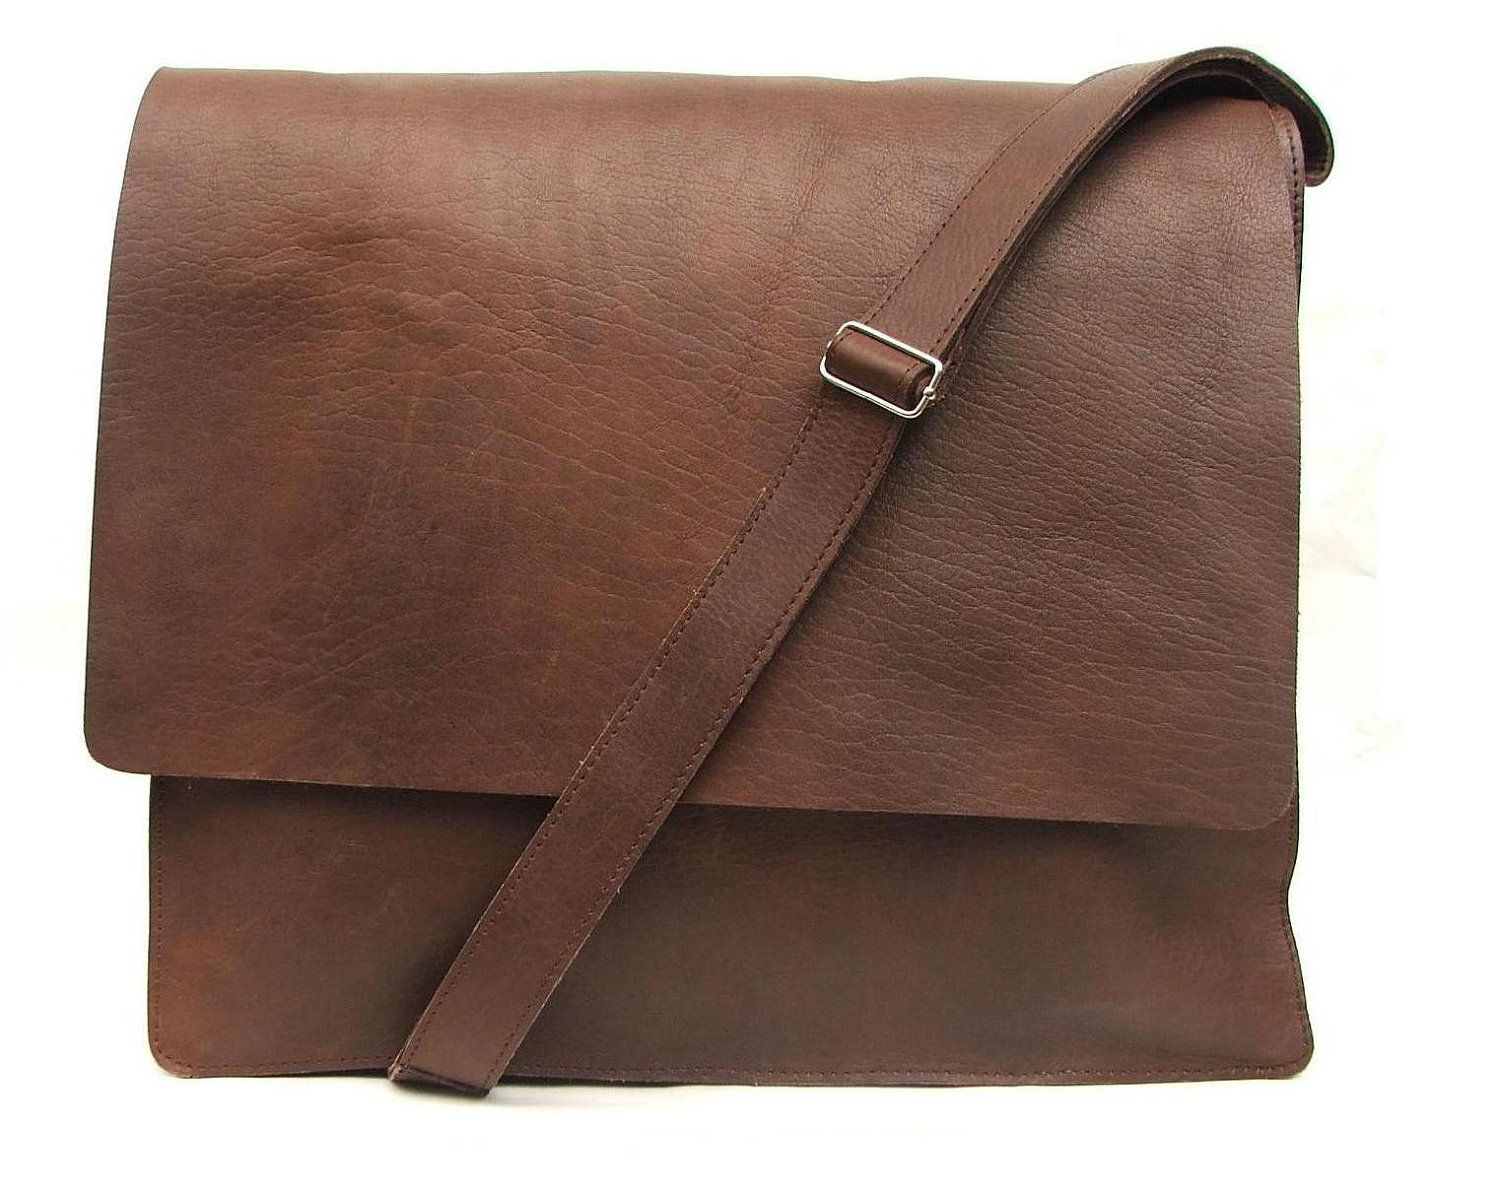 Mens Messenger bag made of 100% Brown Leather for every day use as ...